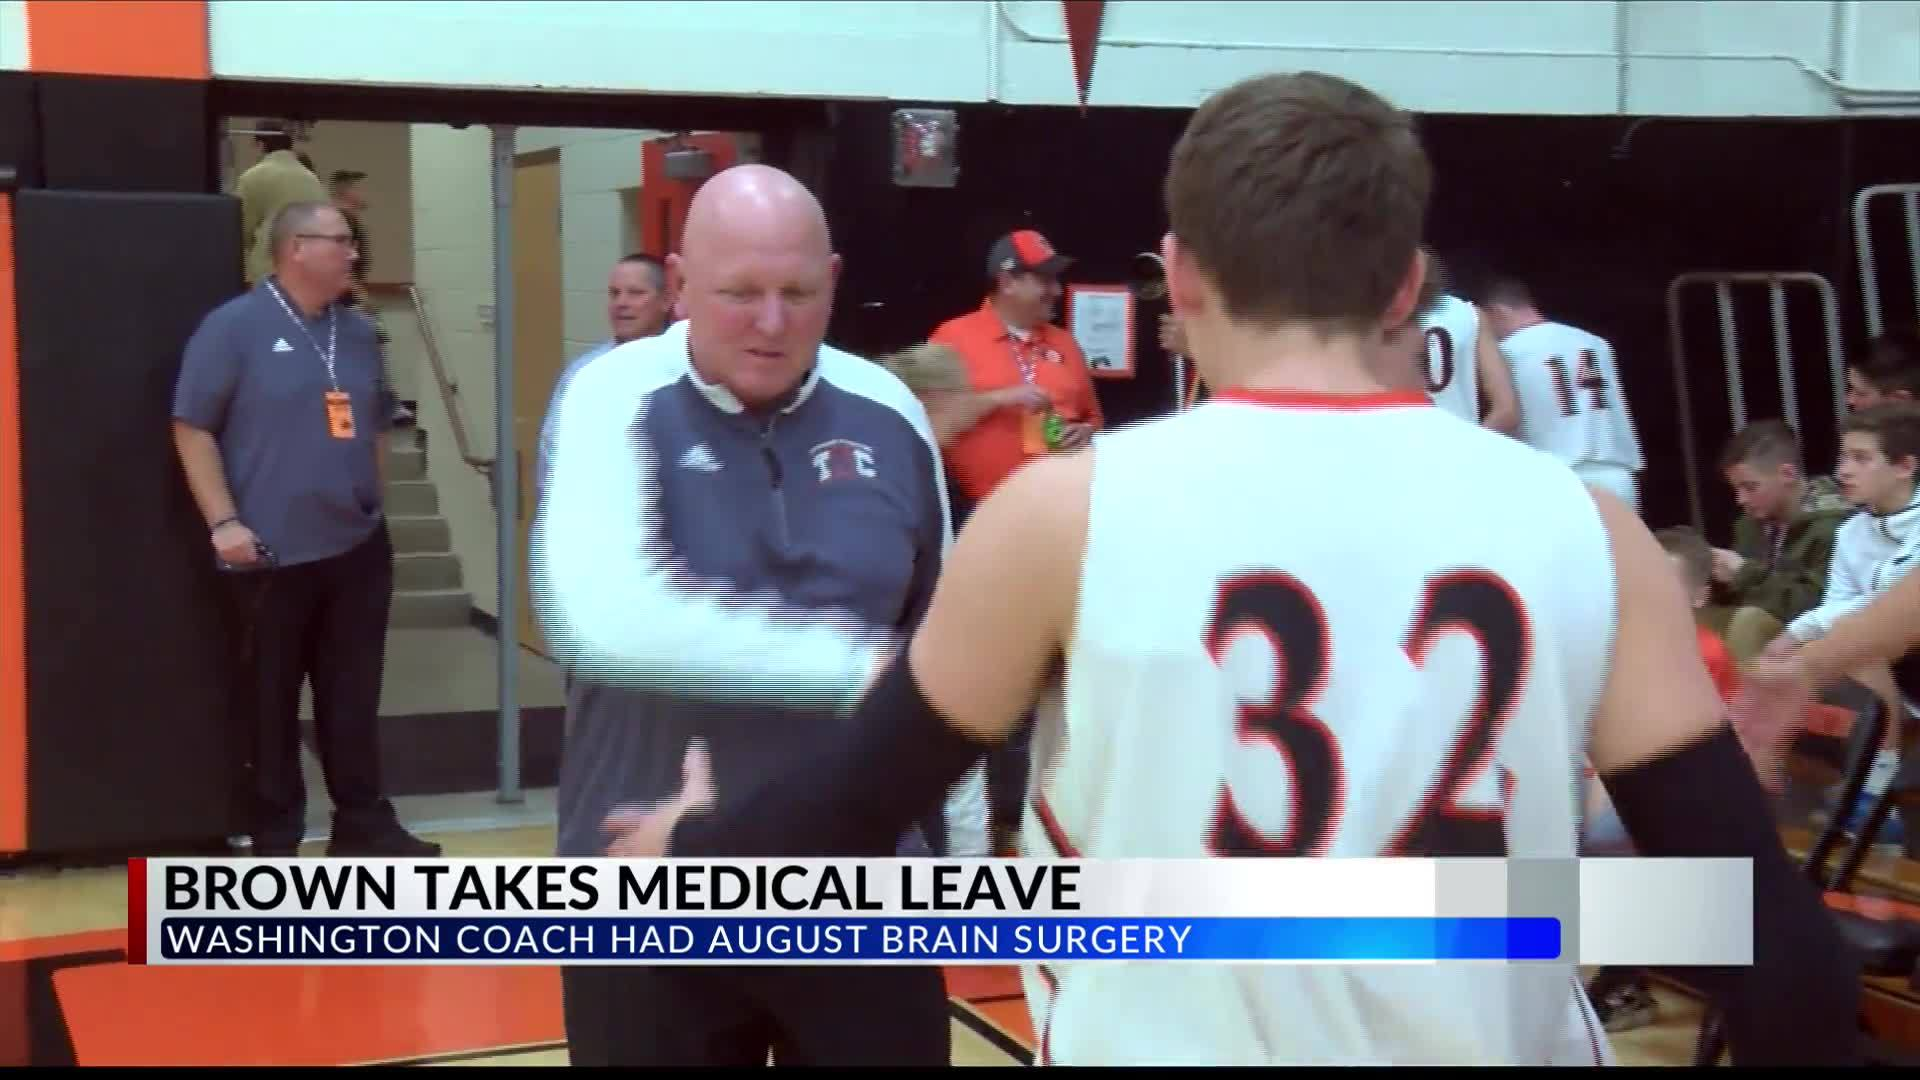 Kevin_Brown_Takes_Medical_Leave_From_WCH_8_20190205050015